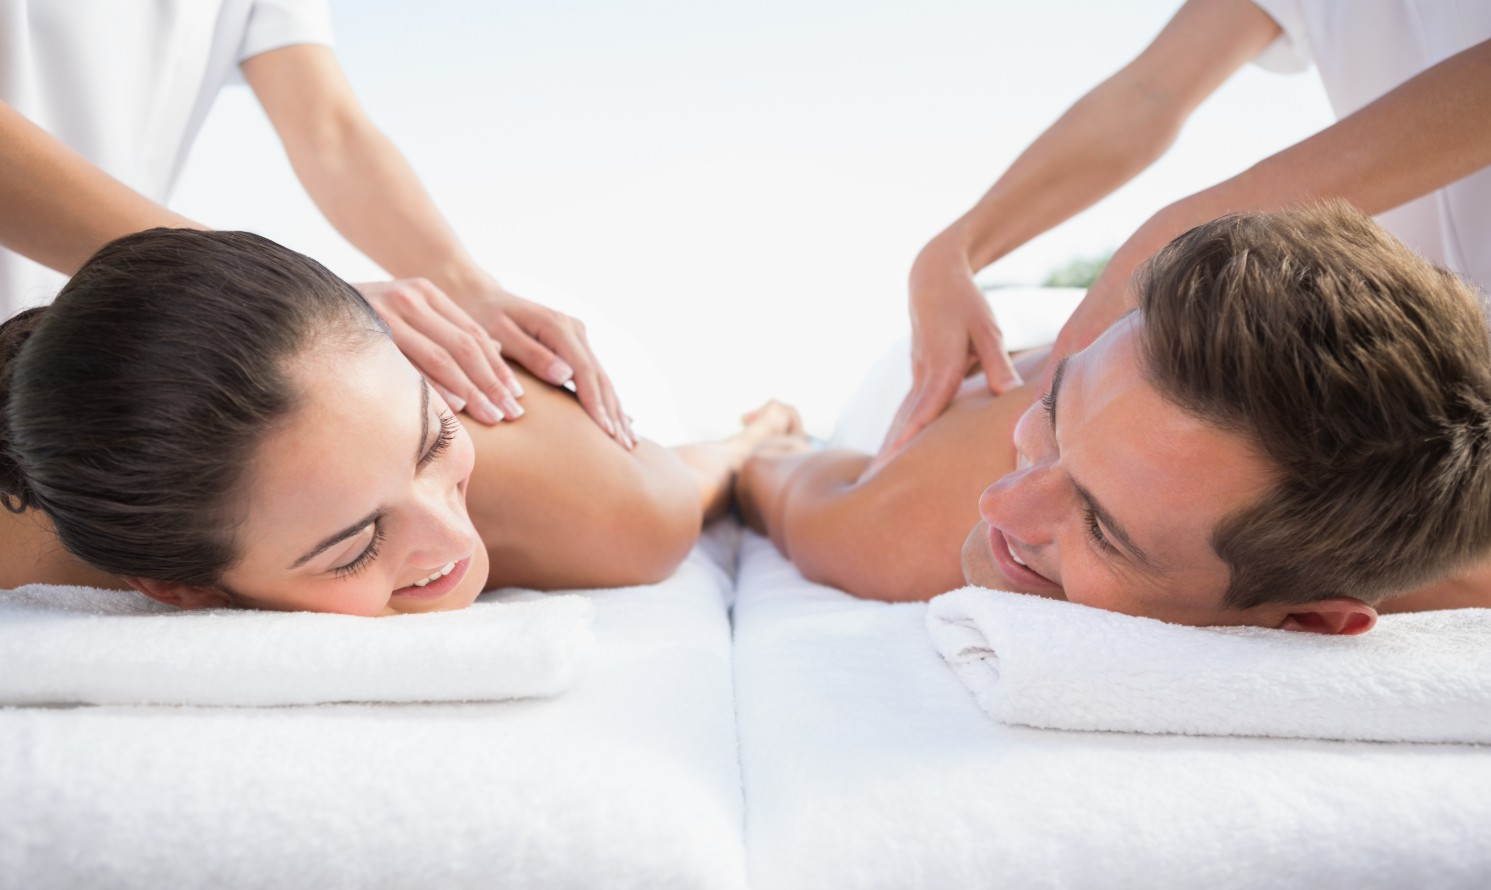 Couples pampering ideas